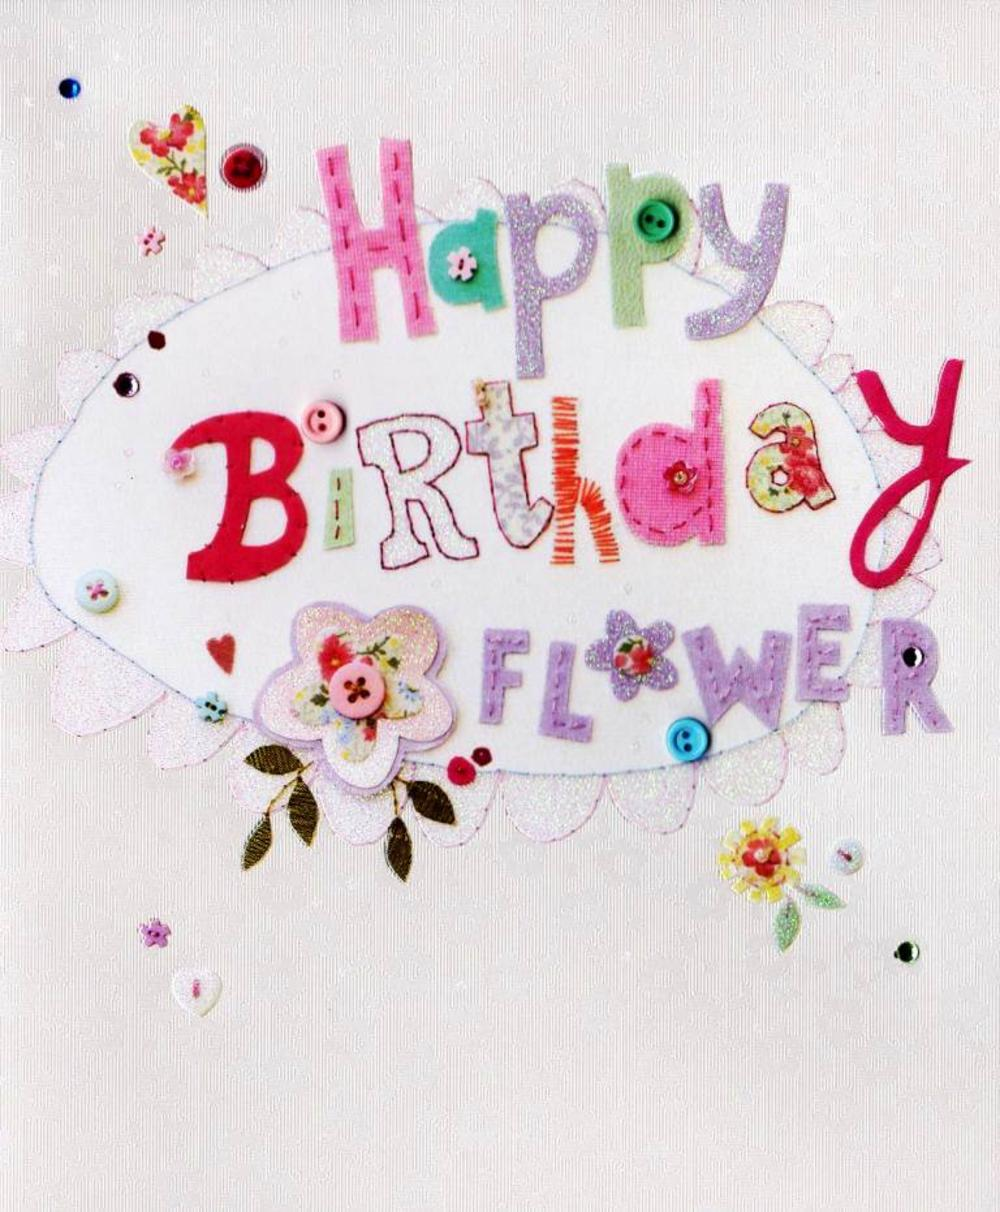 Happy birthday flower pretty birthday greeting card cards love kates happy birthday flower pretty birthday greeting card izmirmasajfo